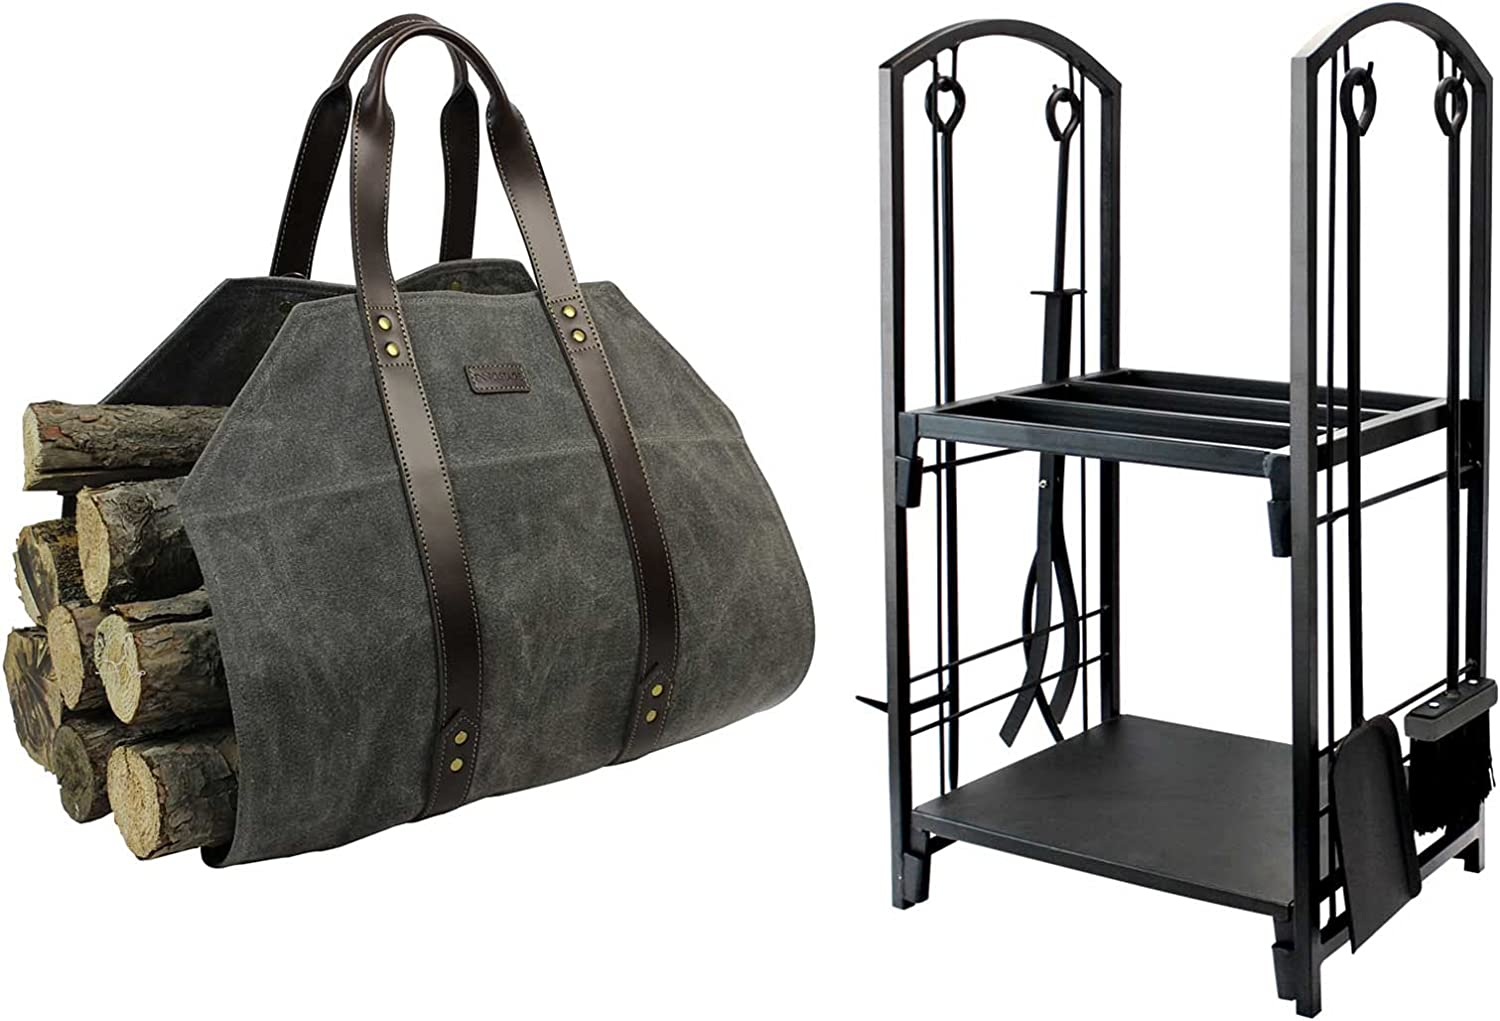 Log Carrier Waxed Canvas Holder Sales for sale Jacksonville Mall Rack Firewood Ho and Bin